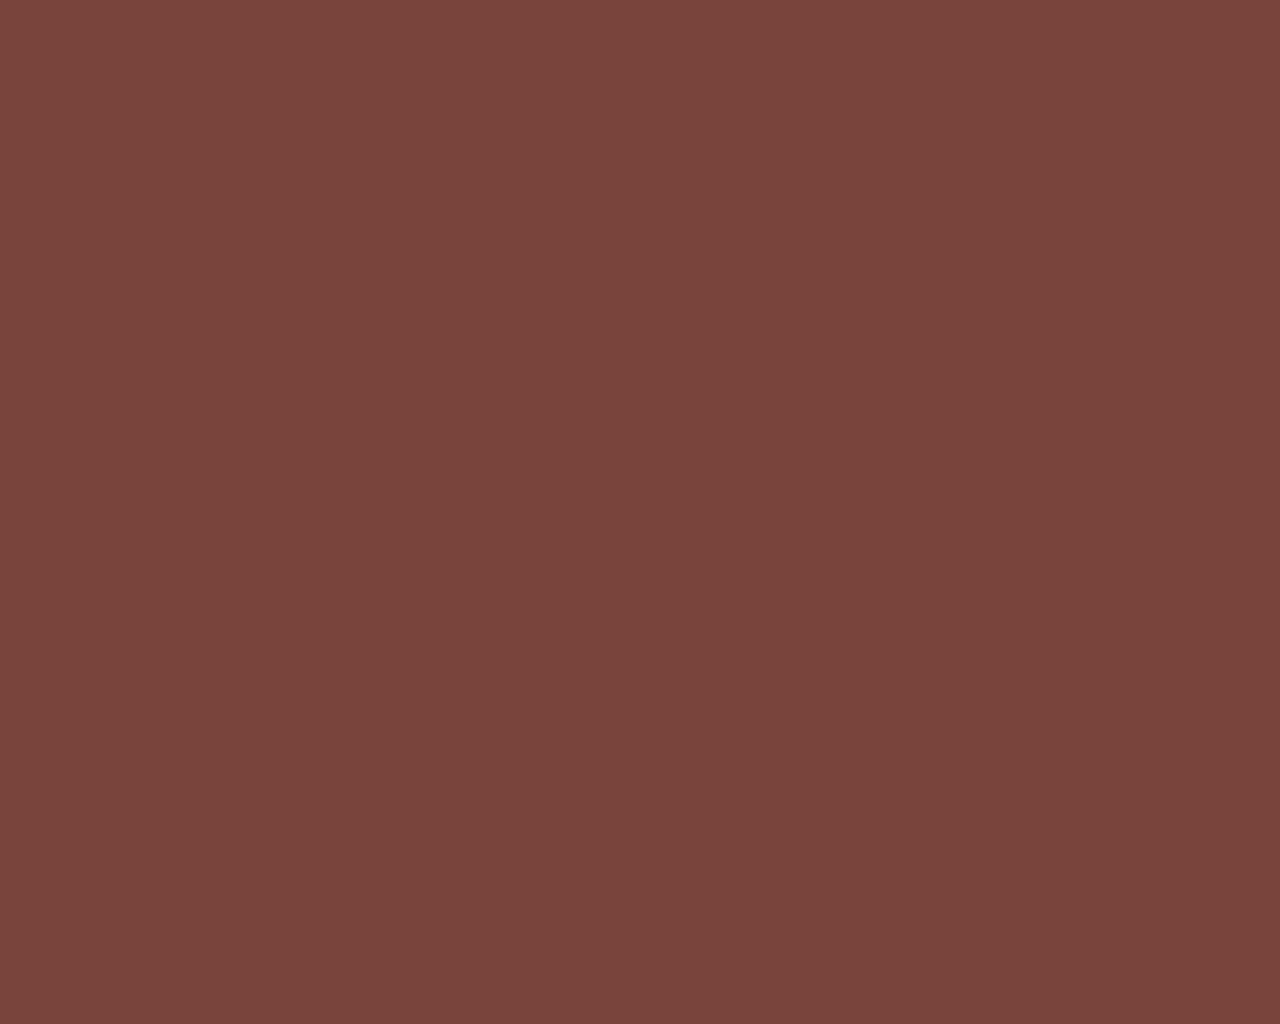 1280x1024 Medium Tuscan Red Solid Color Background